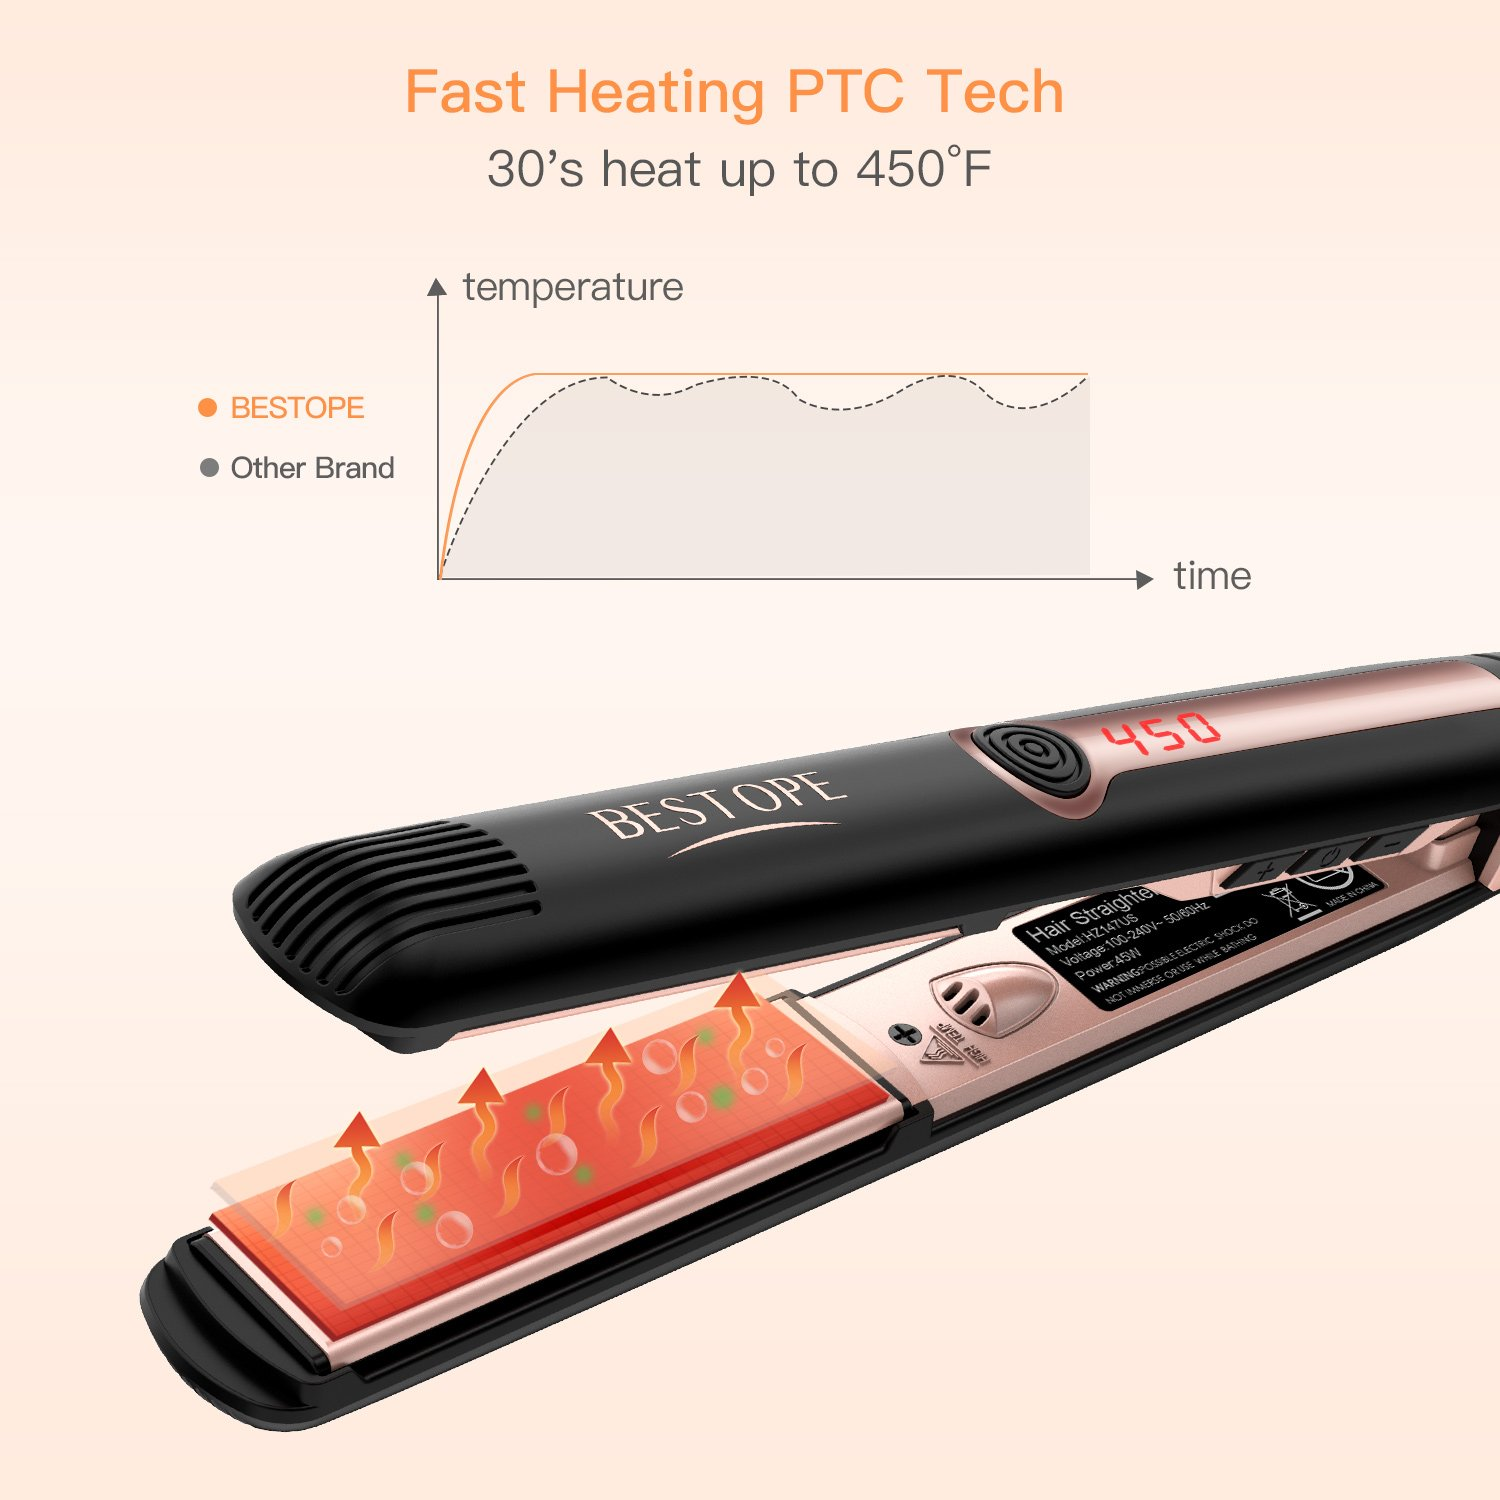 BESTOPE 1 inch Hair Straightener Ceramic Ionic Flat Iron with Instant Heat Up, Dual Voltage Adjustable Temperature for All Hair Types by BESTOPE (Image #3)